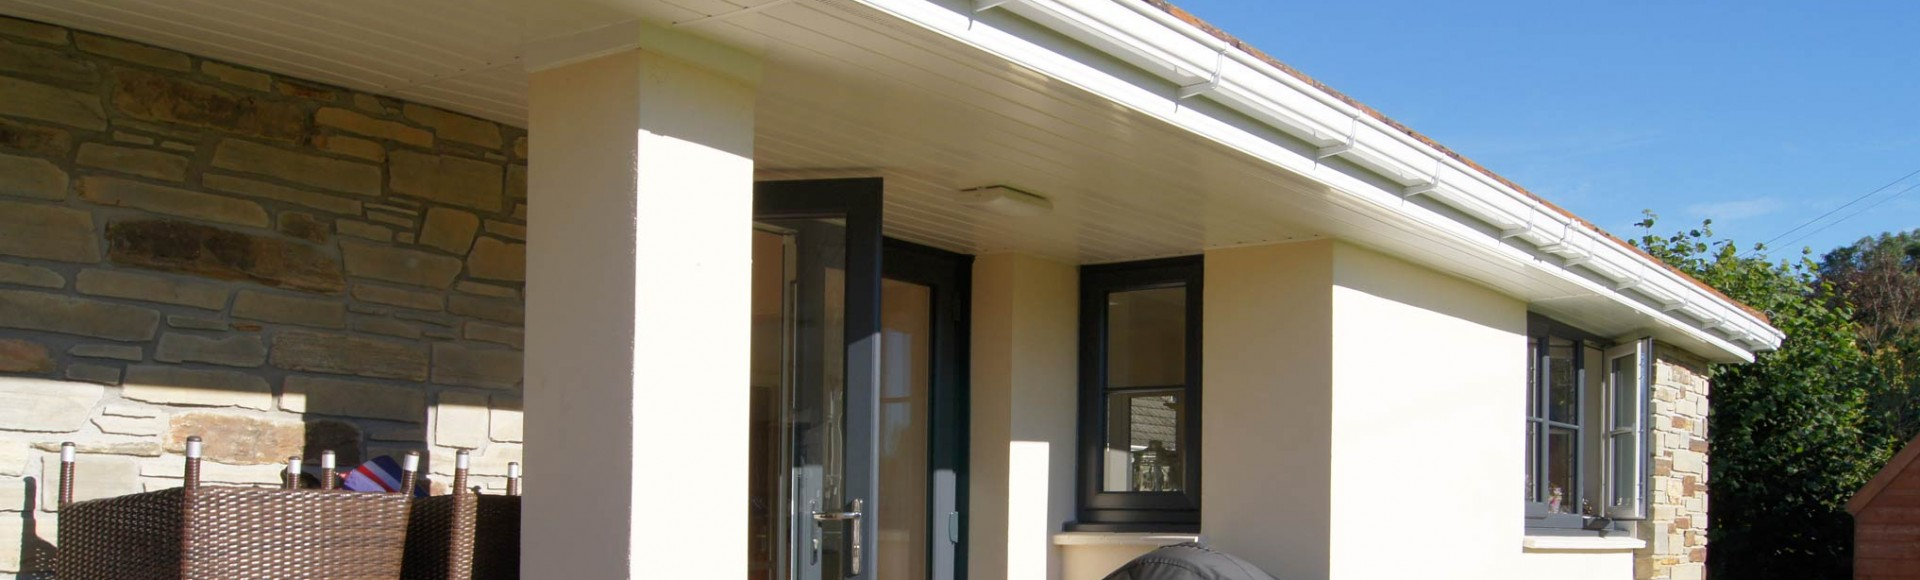 Patio and roofline products south west